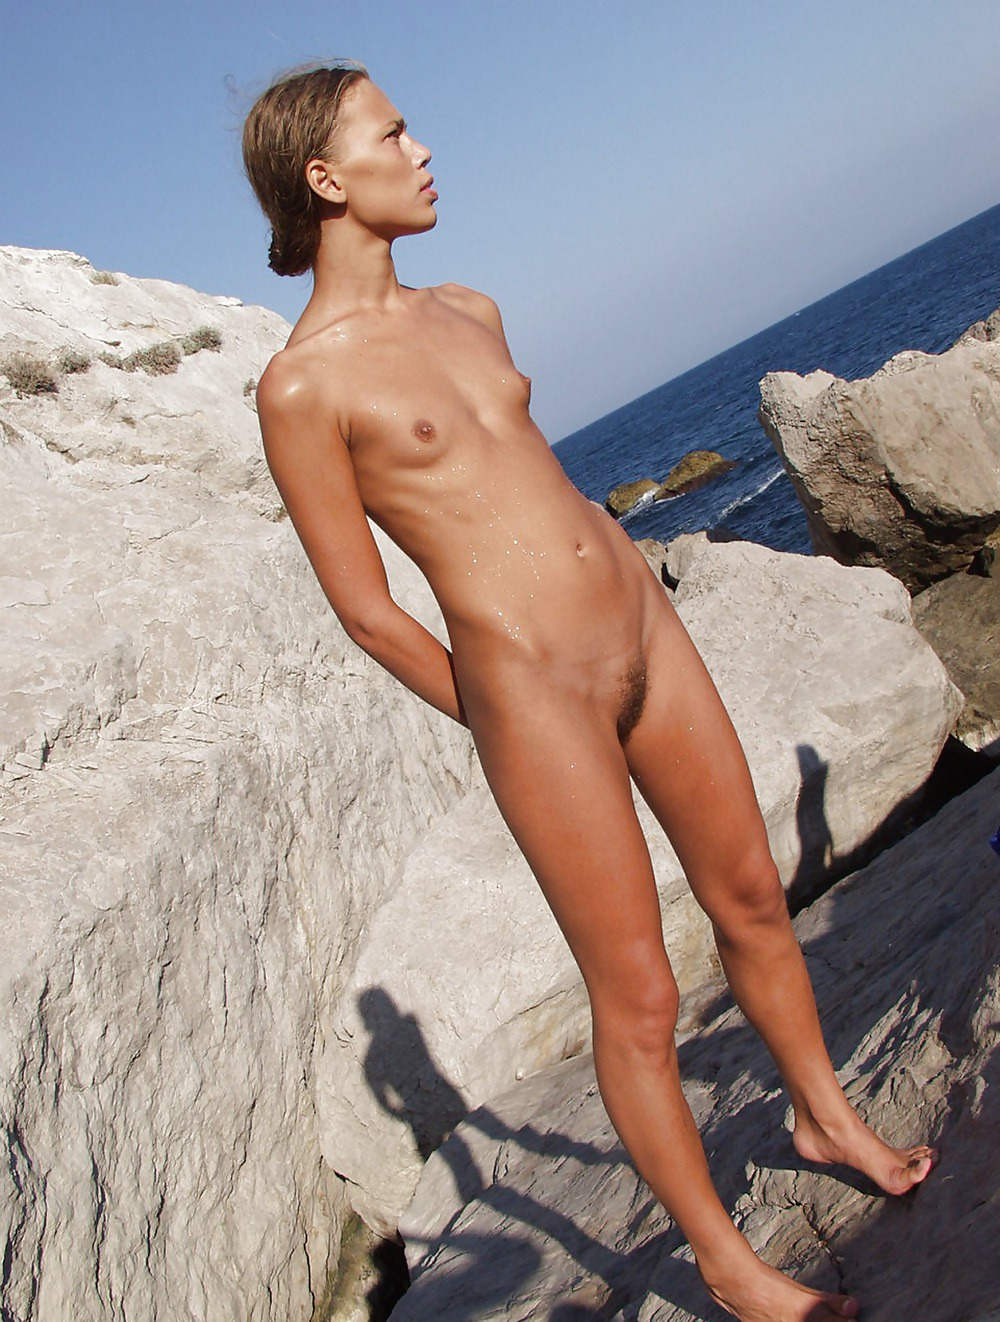 exhibitionist free tubes look excite and delight